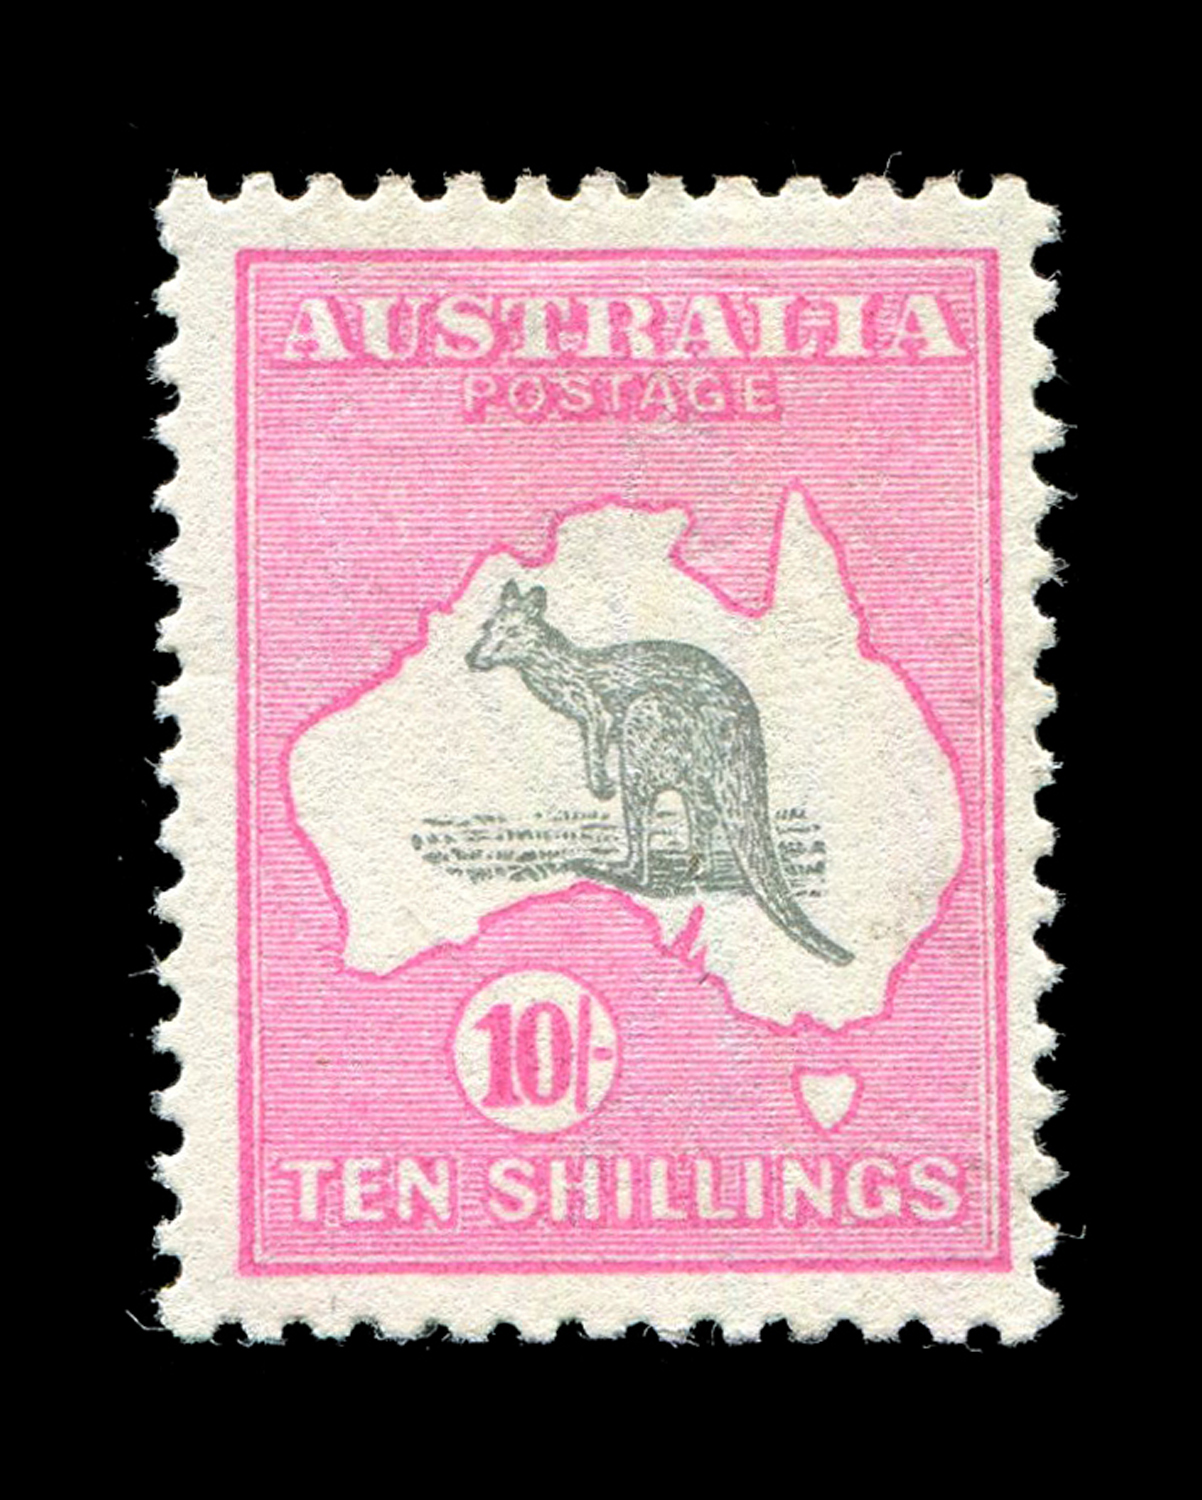 Lot 3010 - An Australia 1915 10 shillings grey and pale aniline pink stamp (SG 43B), fine mint.Buyer's